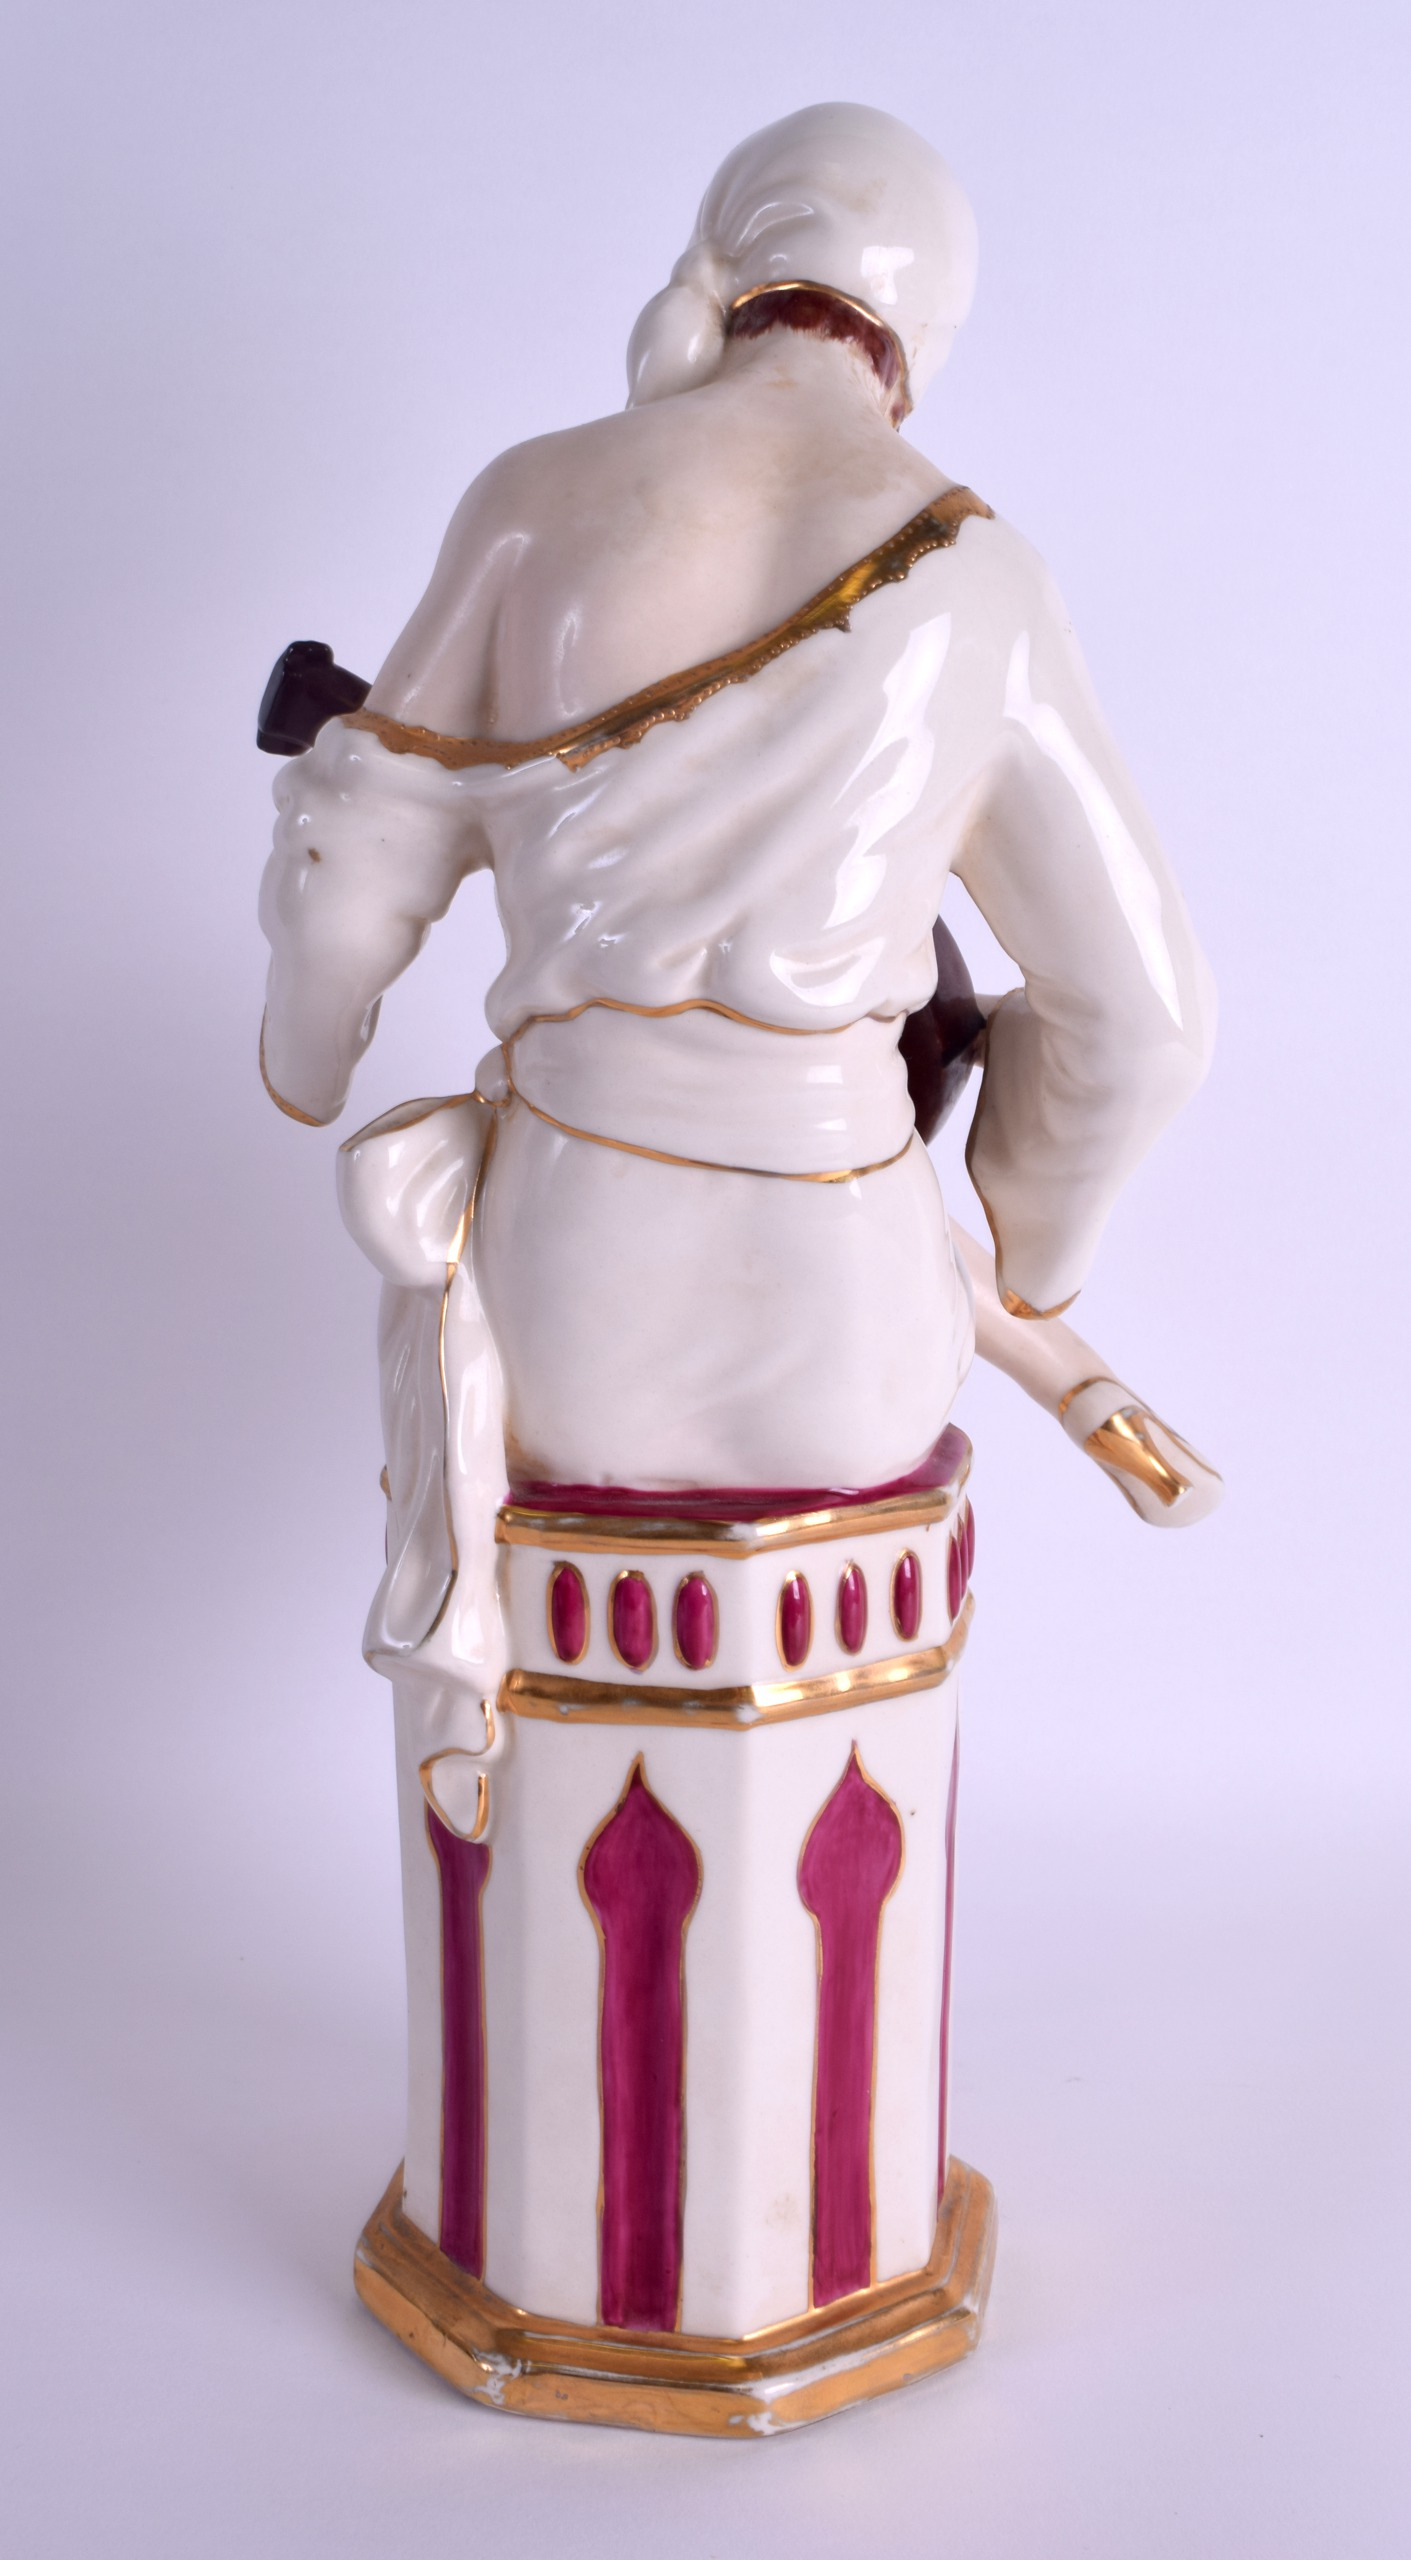 Lot 83 - A LARGE ART DECO AUSTRIAN ROYAL DUX FIGURE OF A SEMI CLAD MUSICIAN modelled playing an instrument